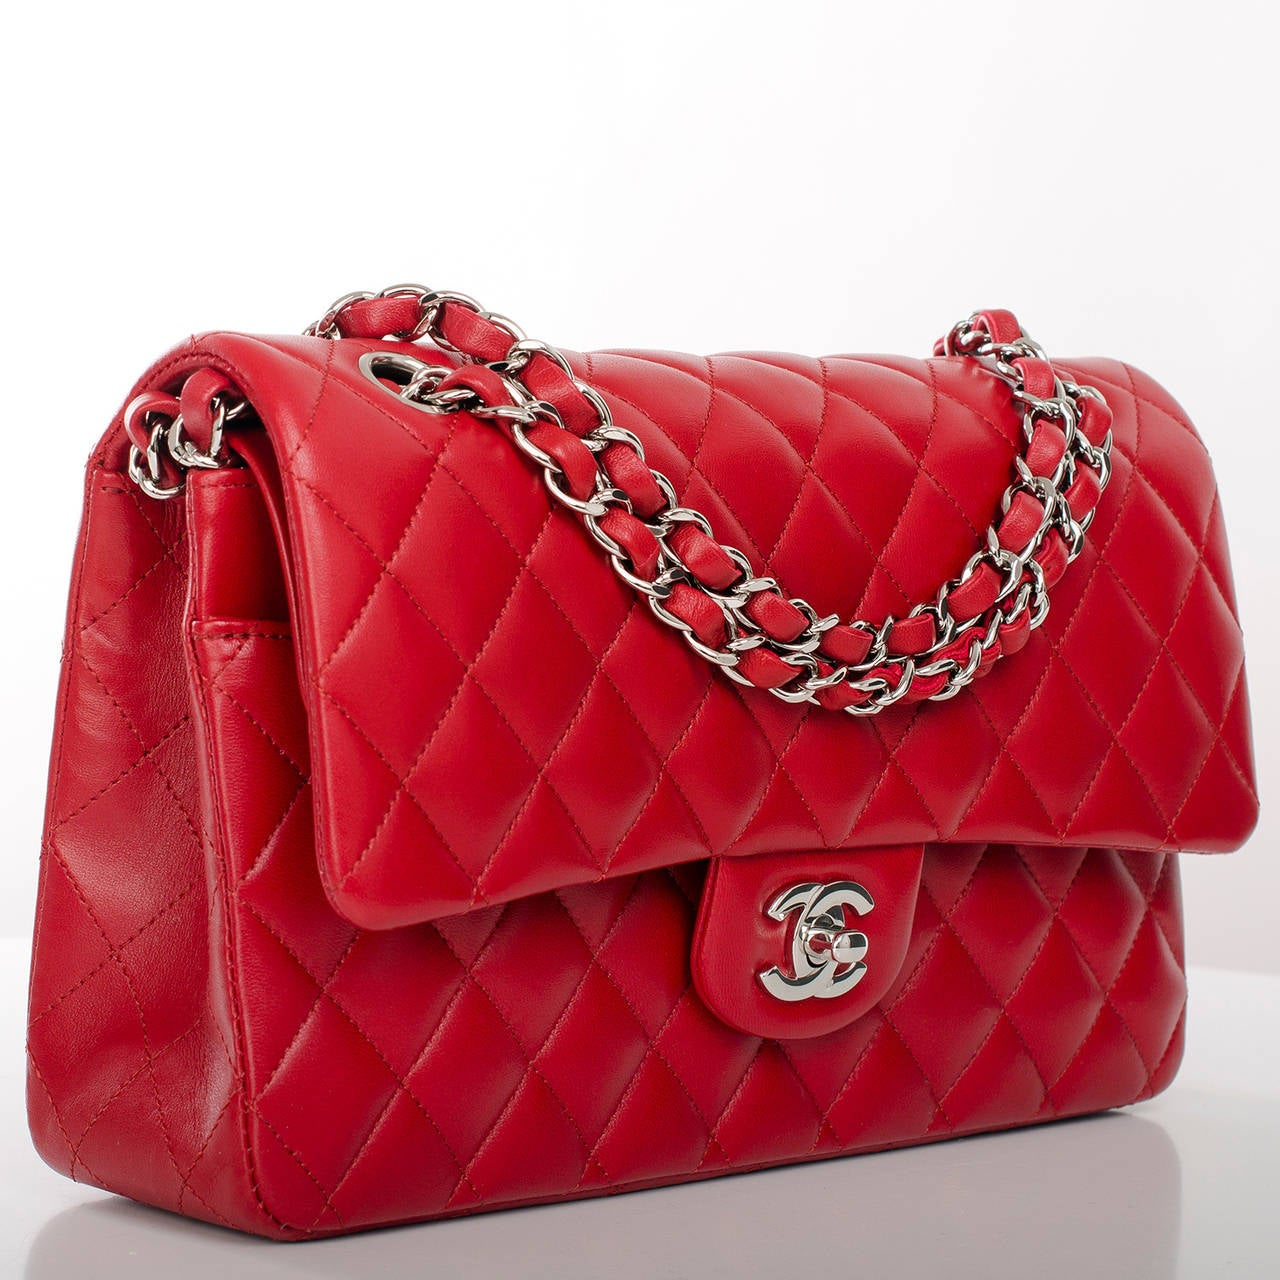 This Medium Classic double flap bag marries red quilted lambskin leather with silver tone hardware and features a full front flap with signature CC turnlock closure, half moon back pocket and an adjustable interwoven silver tone chain link and red